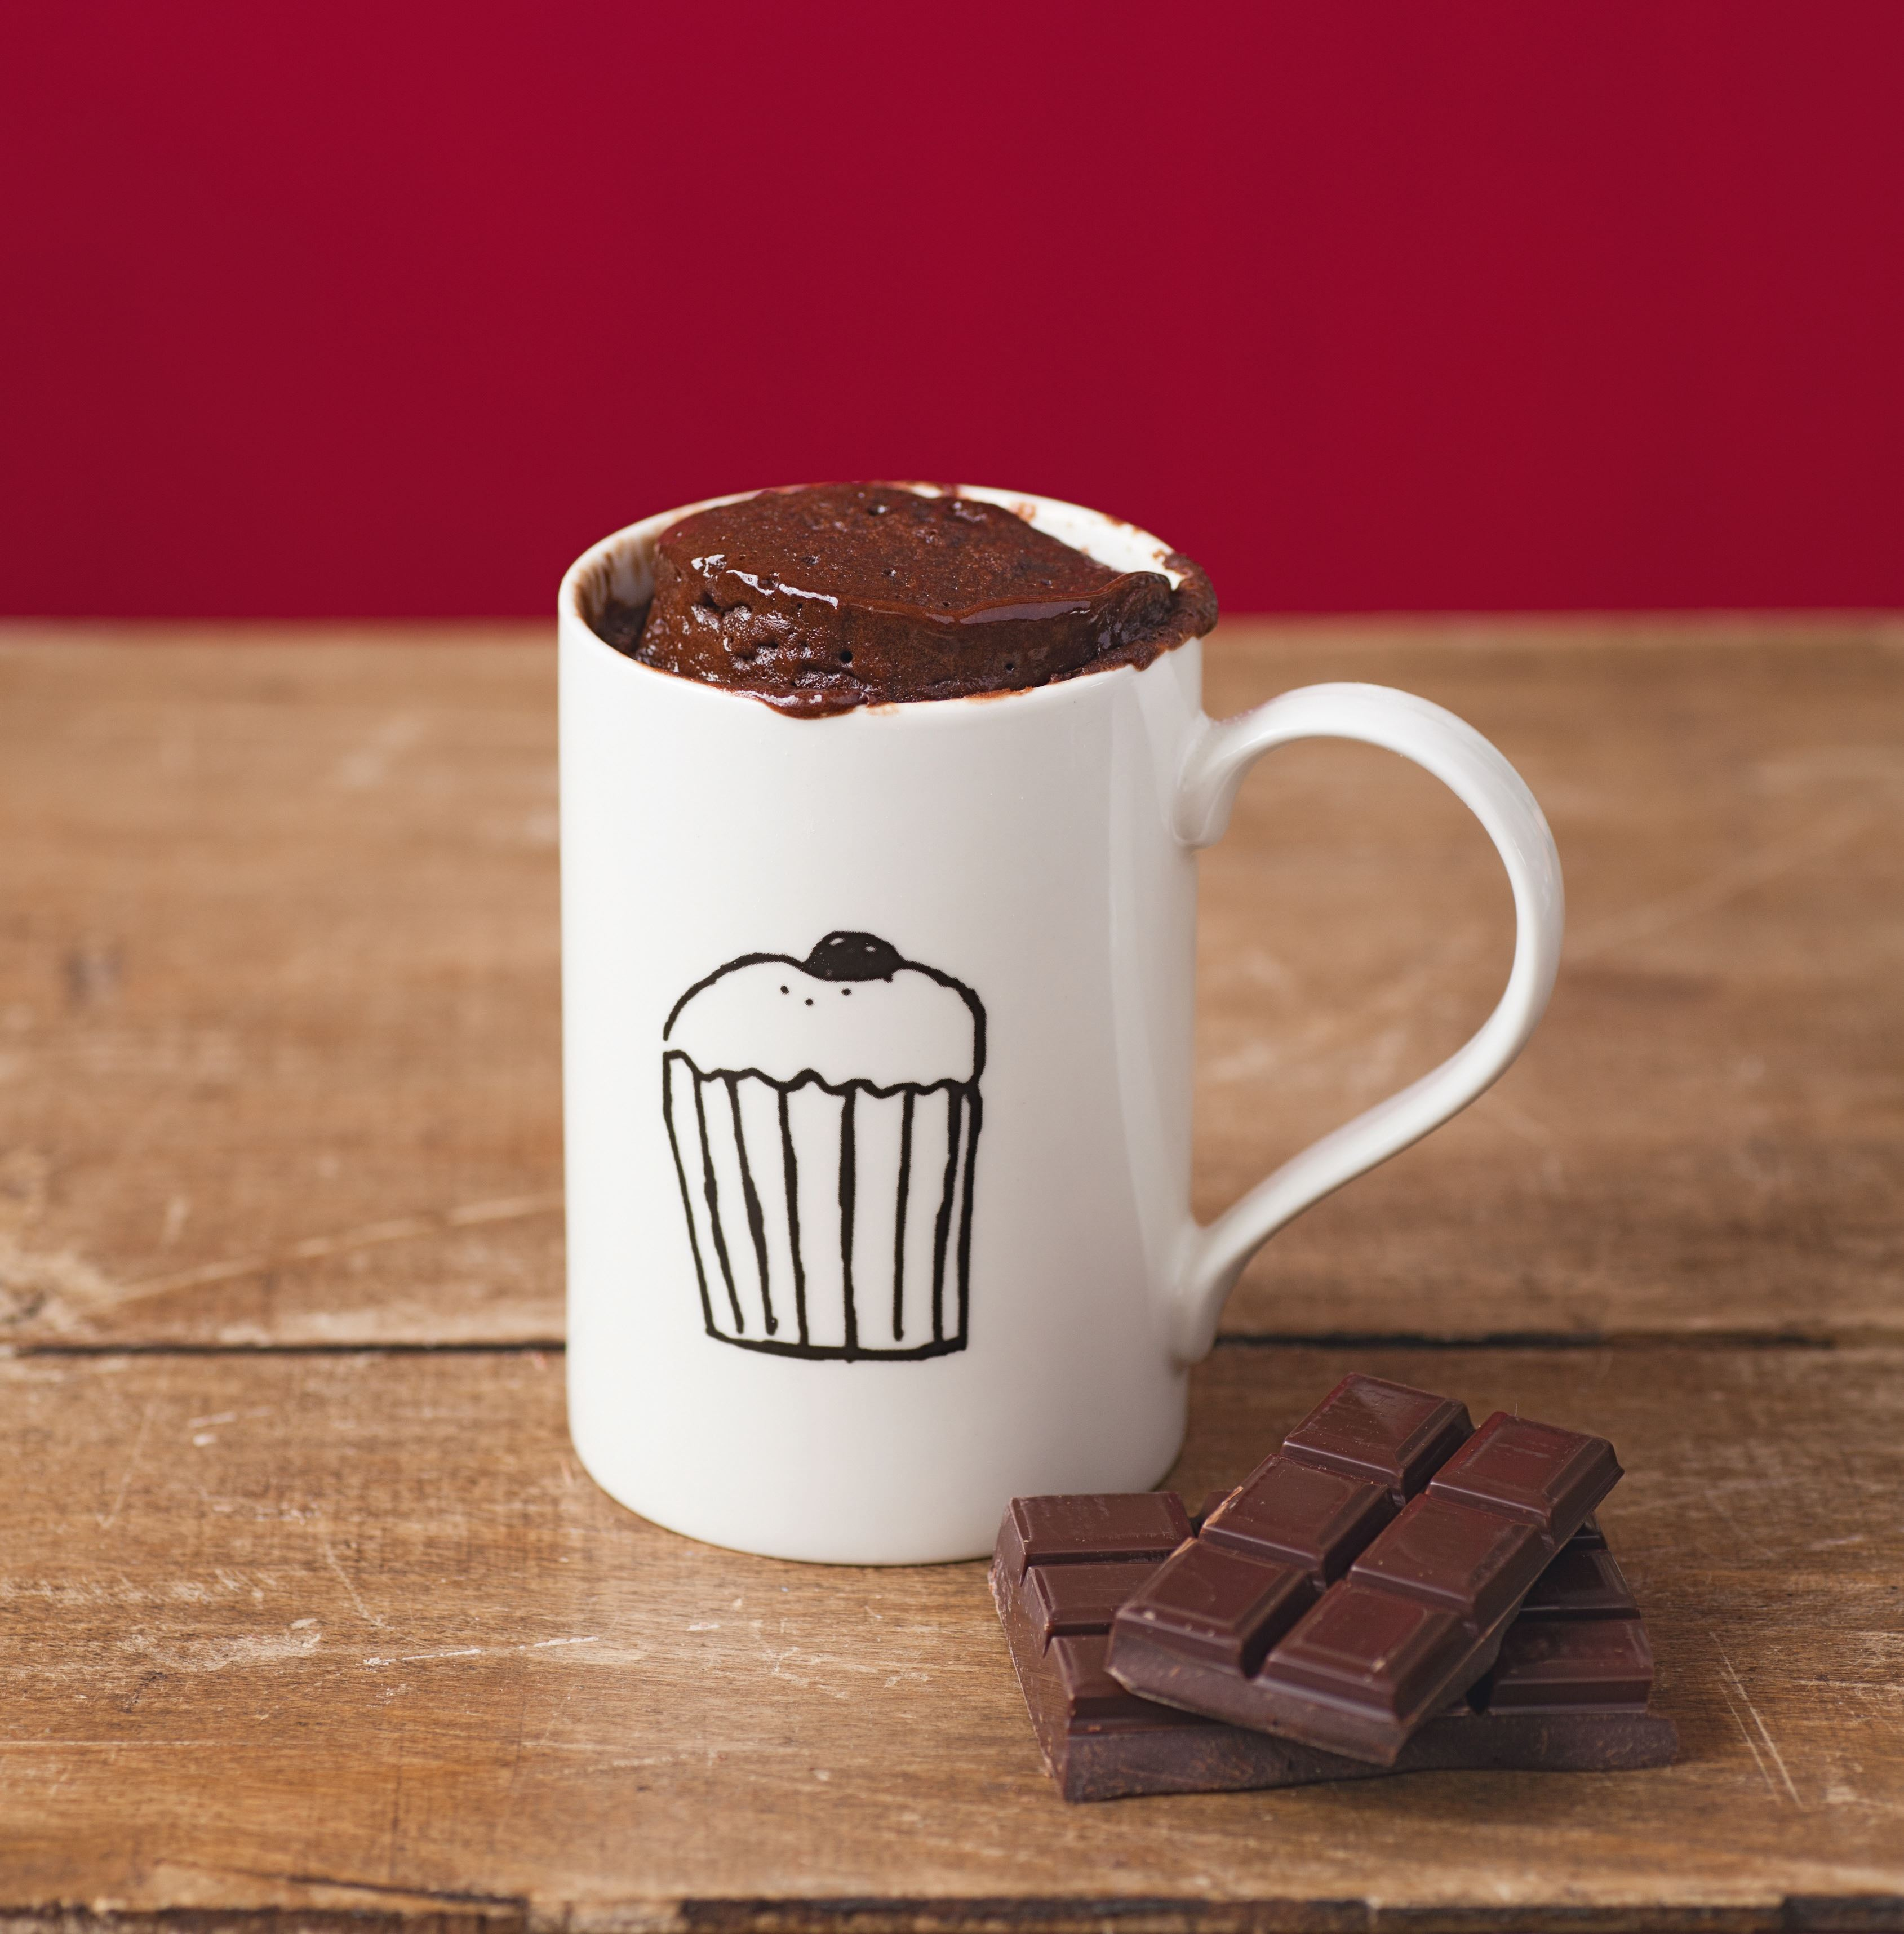 Dark chocolate fondant mug cake